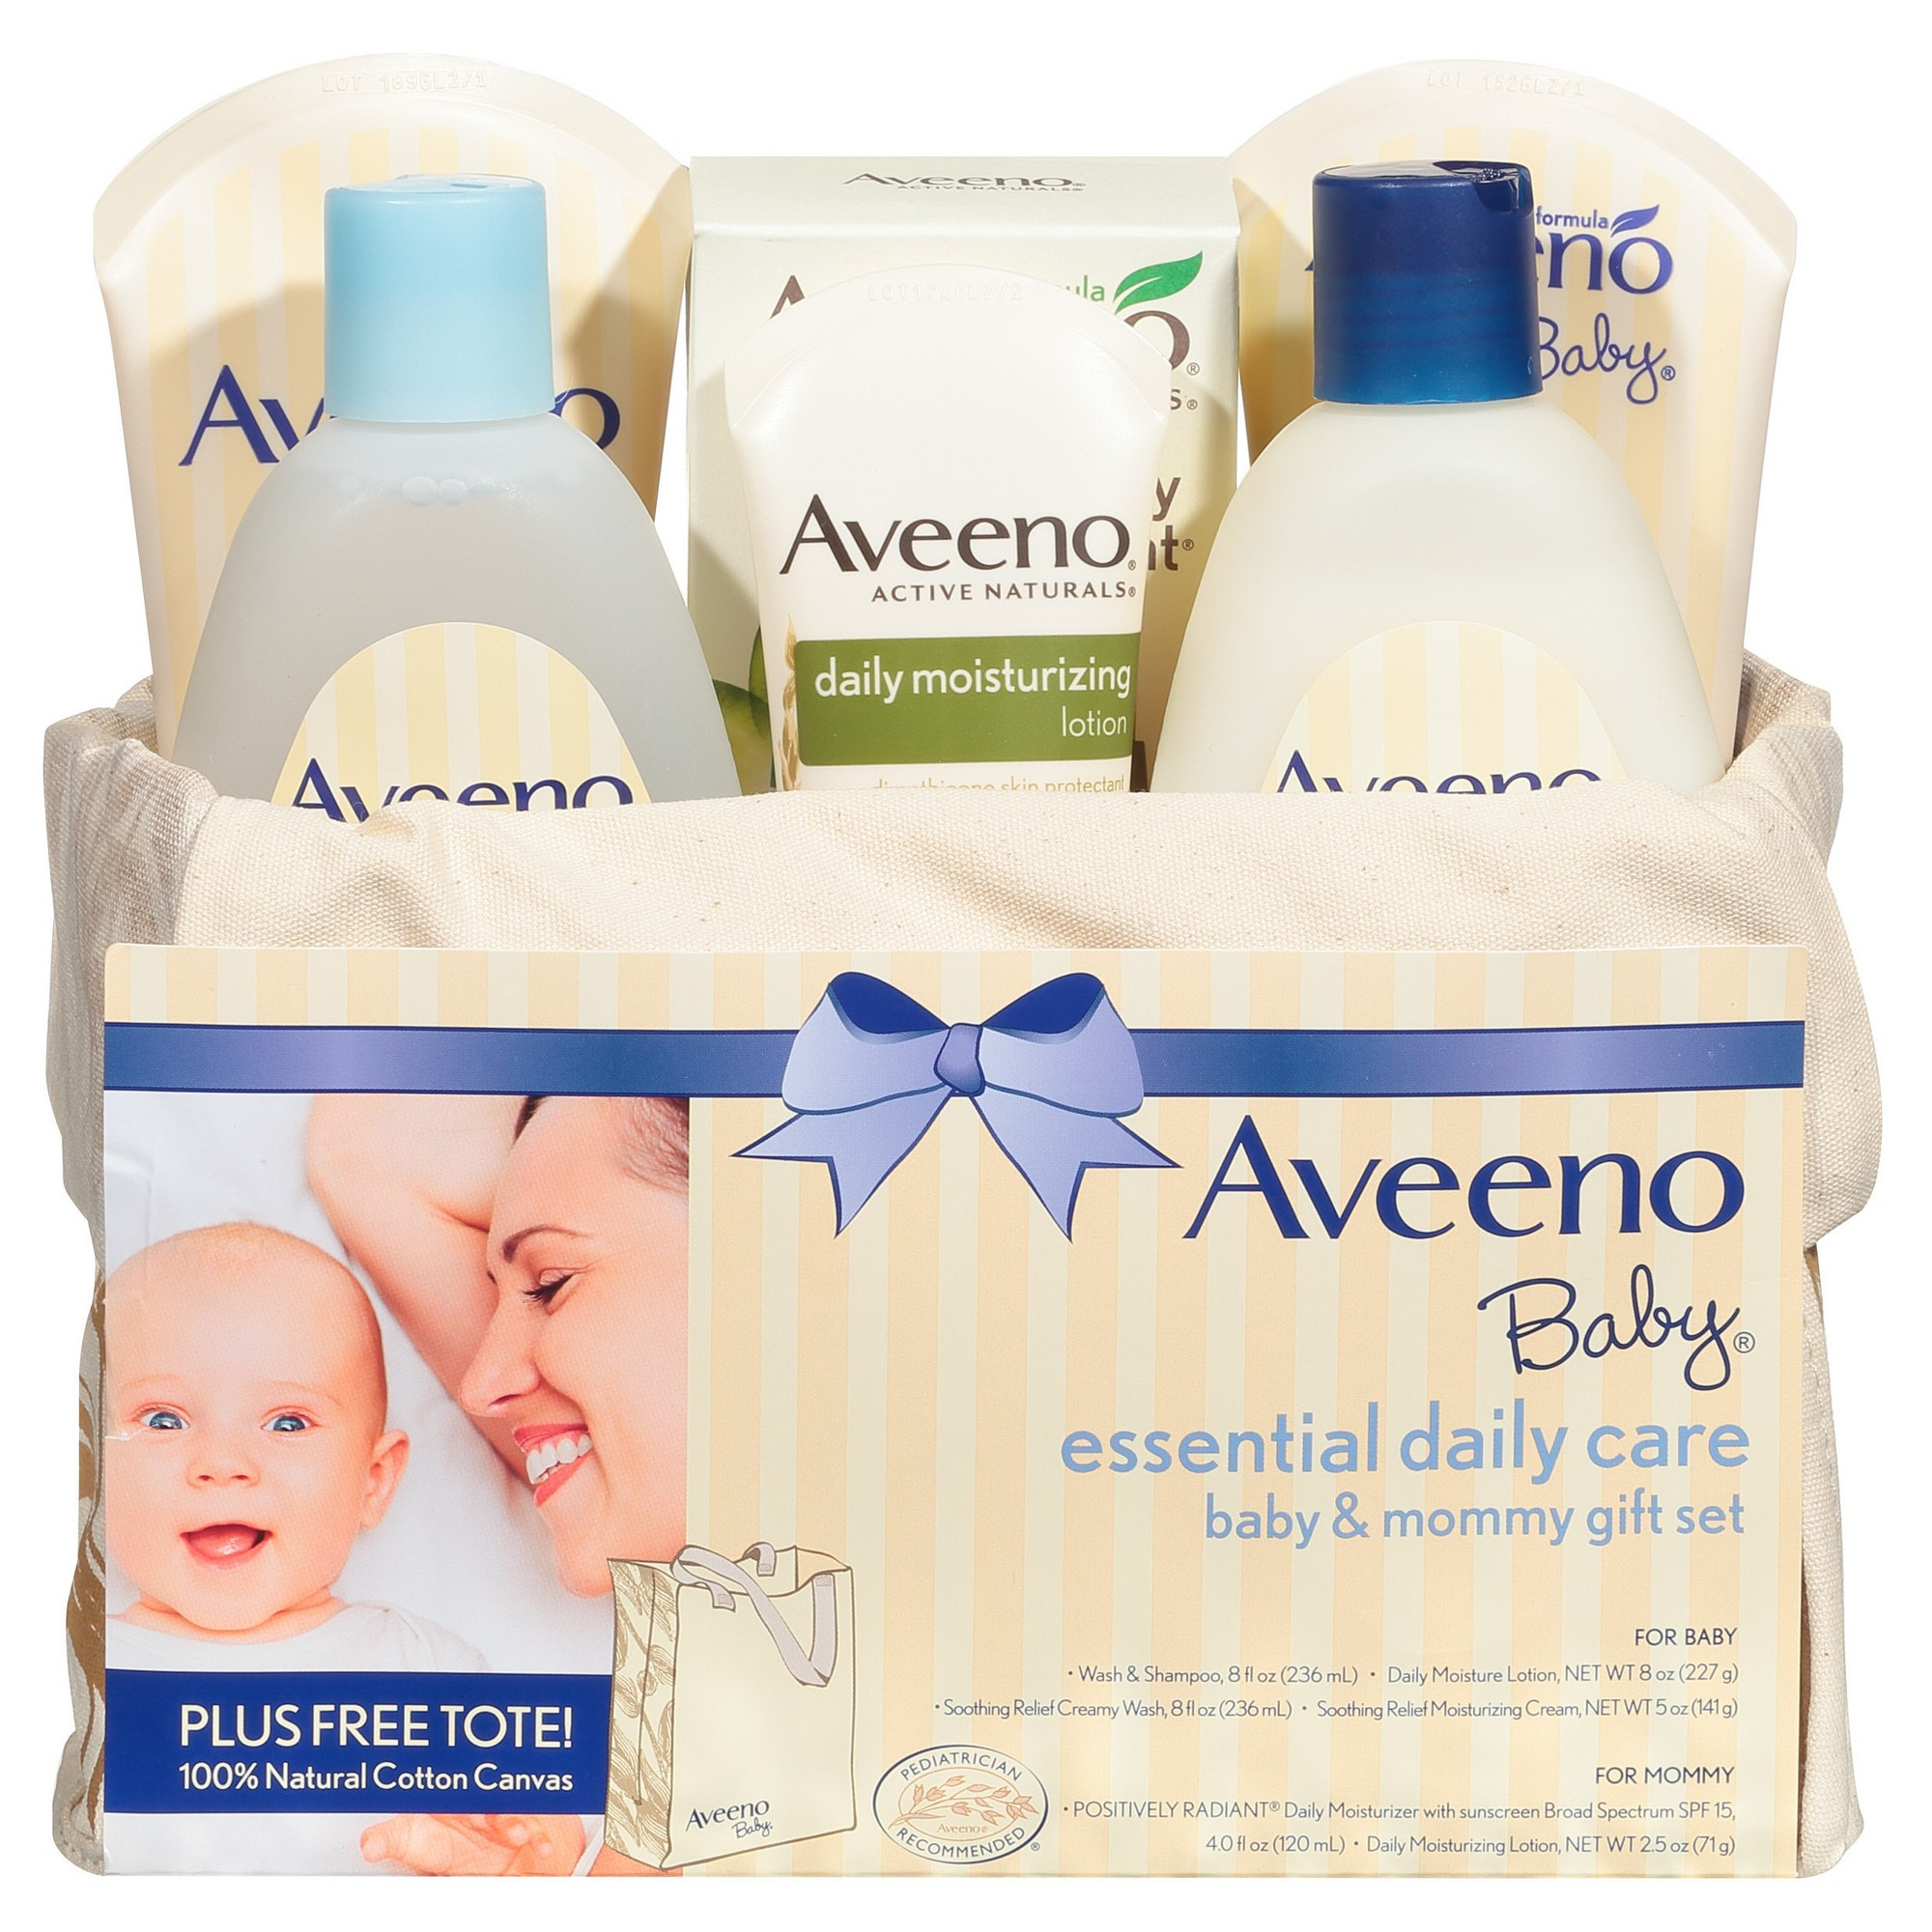 Aveeno Baby Essentials Daily Care Gift Set, Adult Unisex